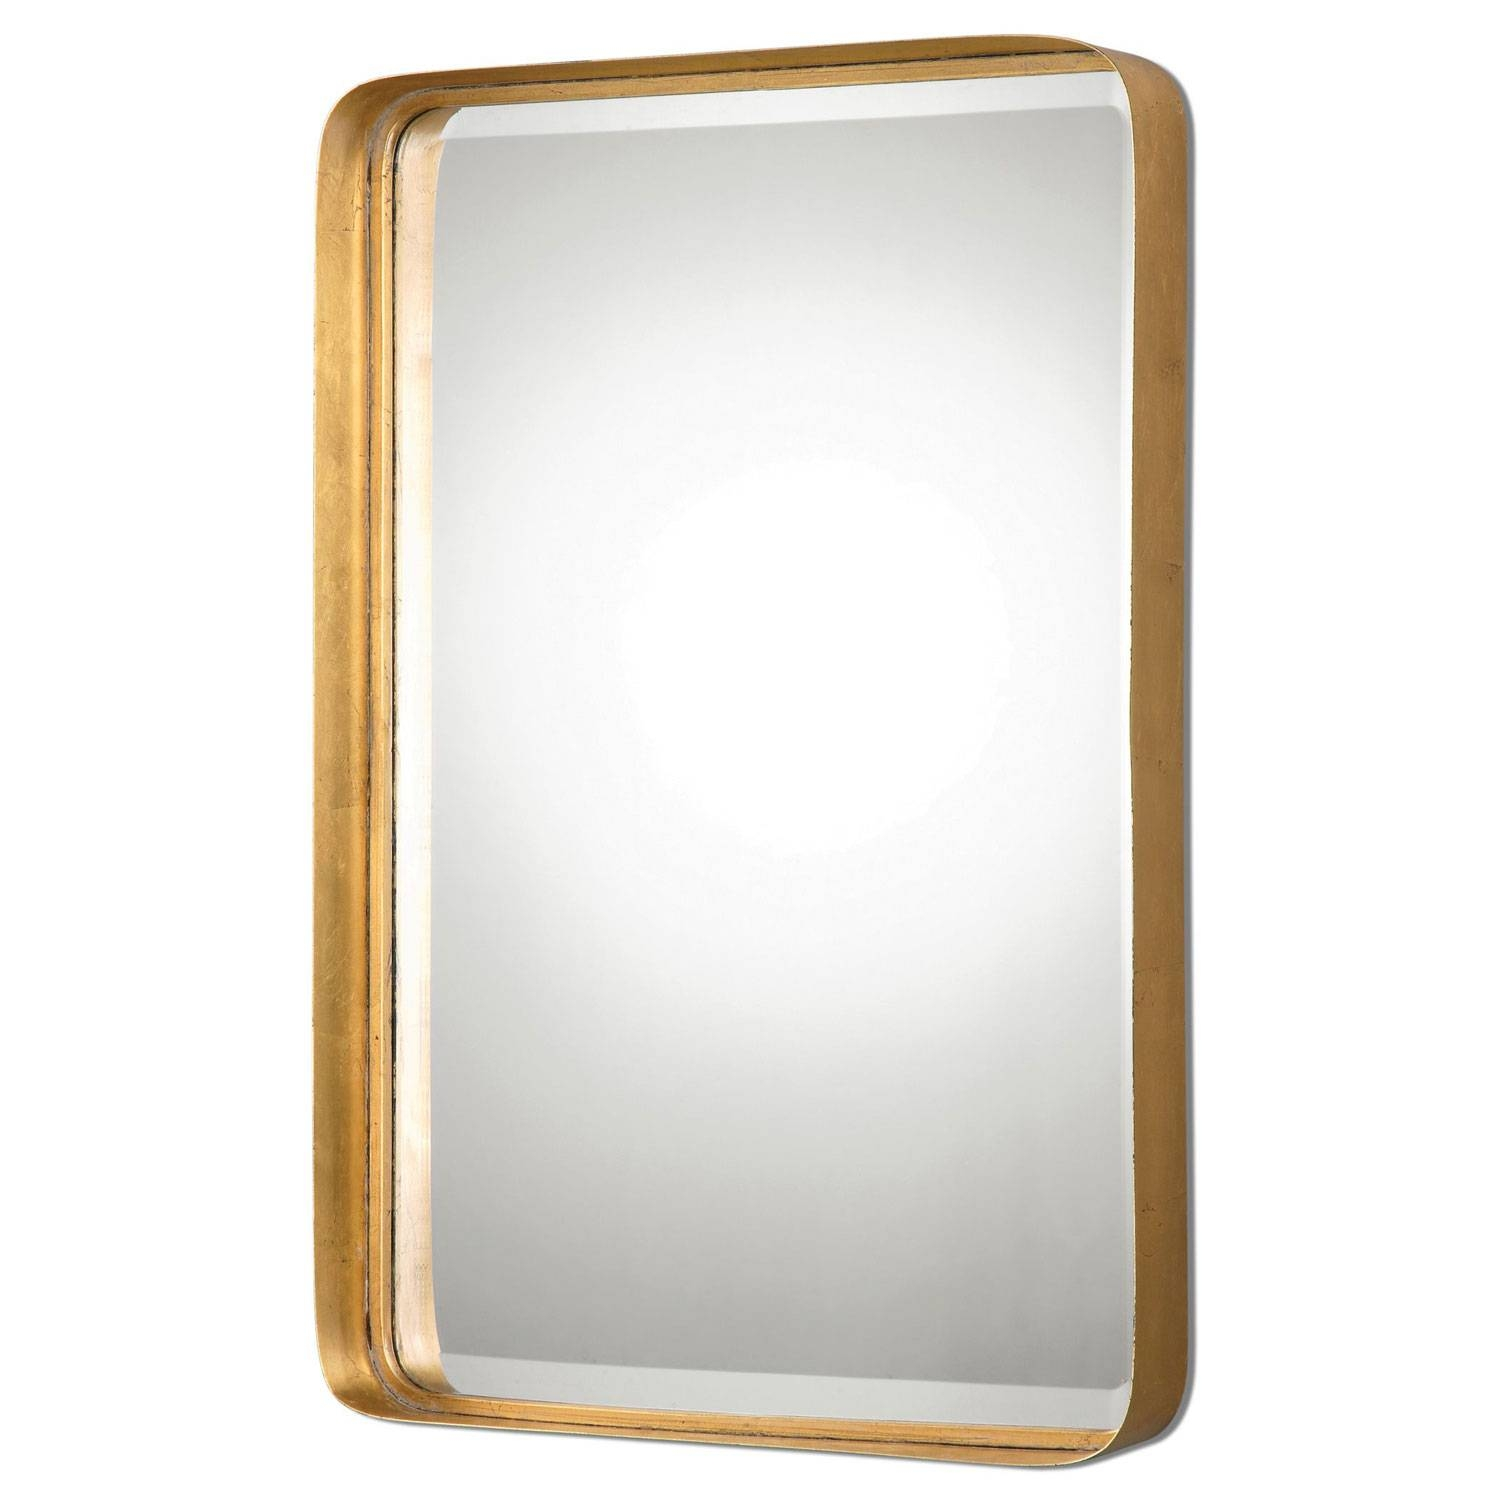 Crofton Antique Gold Mirror Uttermost Wall Mirror Mirrors Home Decor throughout Gold Antique Mirrors (Image 11 of 25)